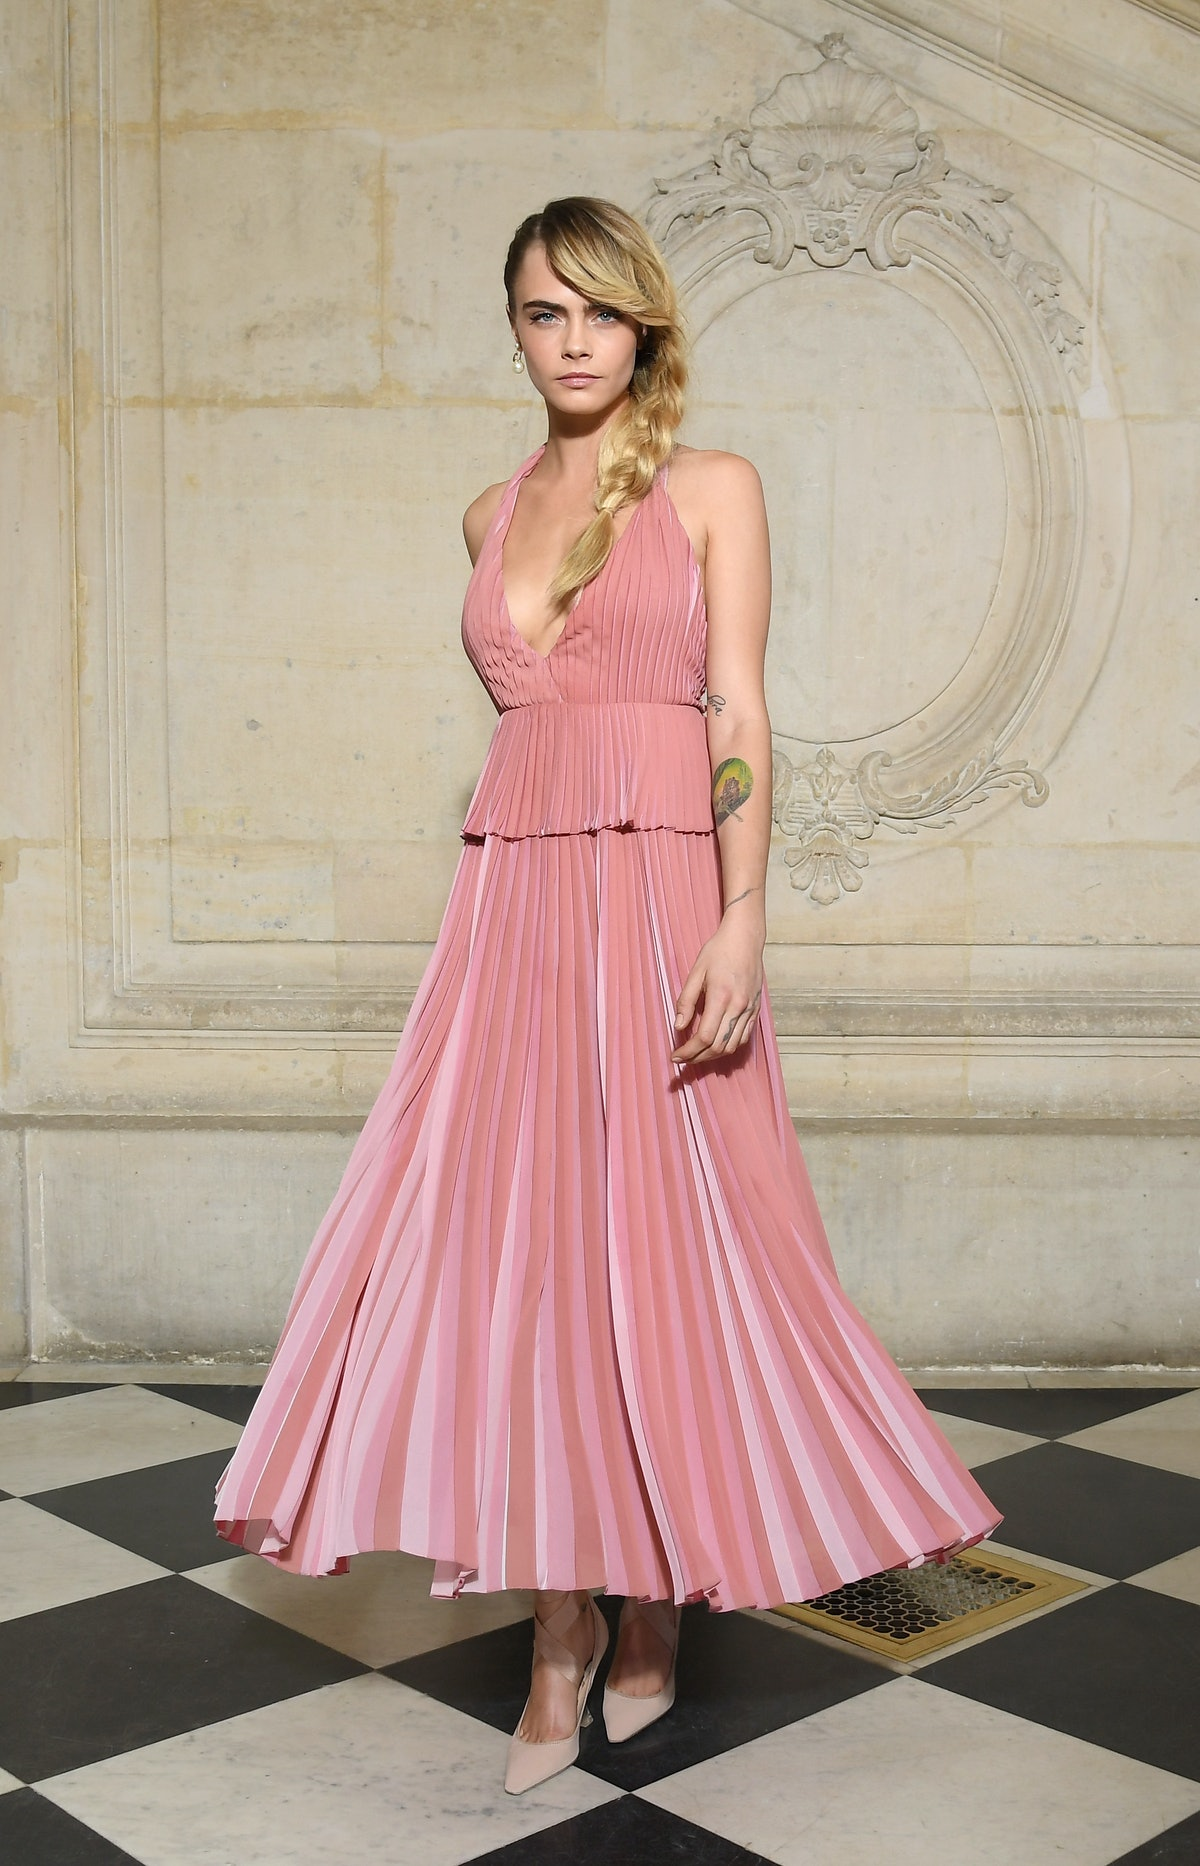 The model Cara D. in a pink Dior gown.